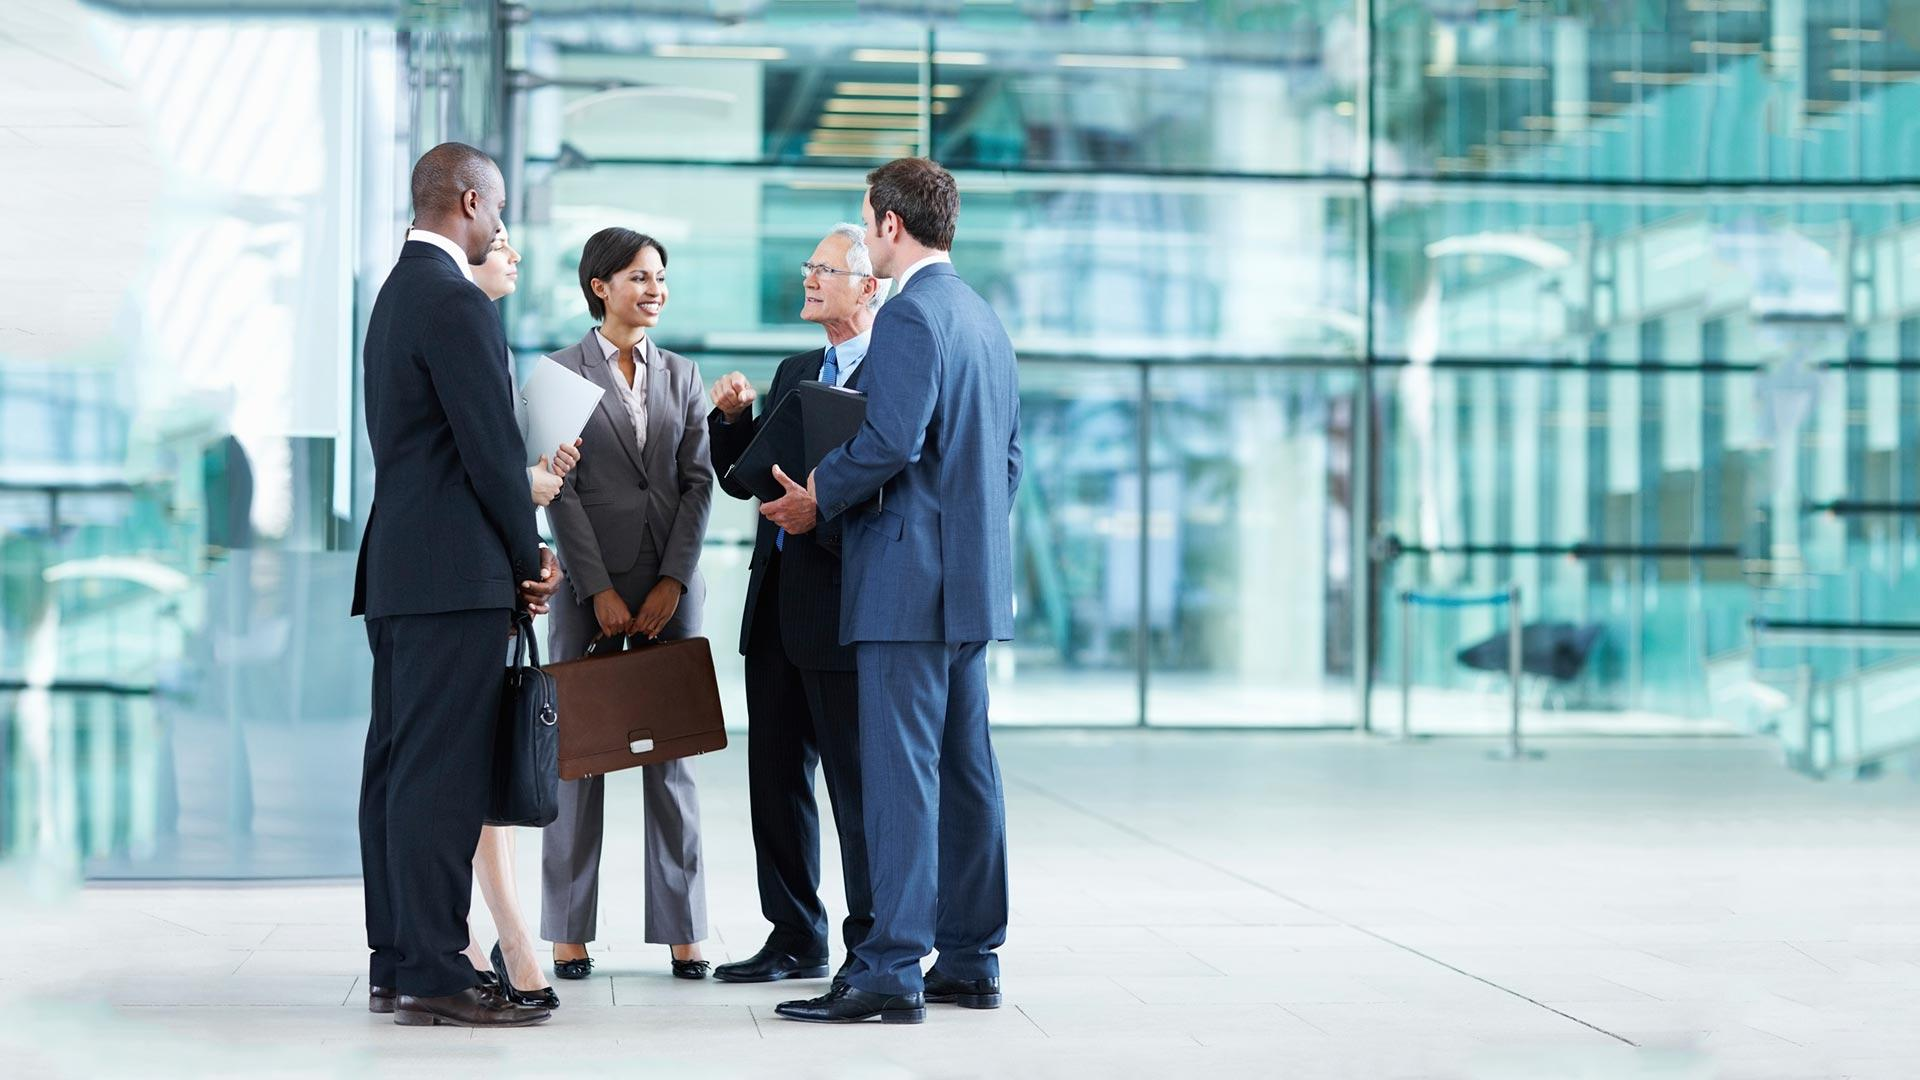 Businessmen and woman standing, discussing business